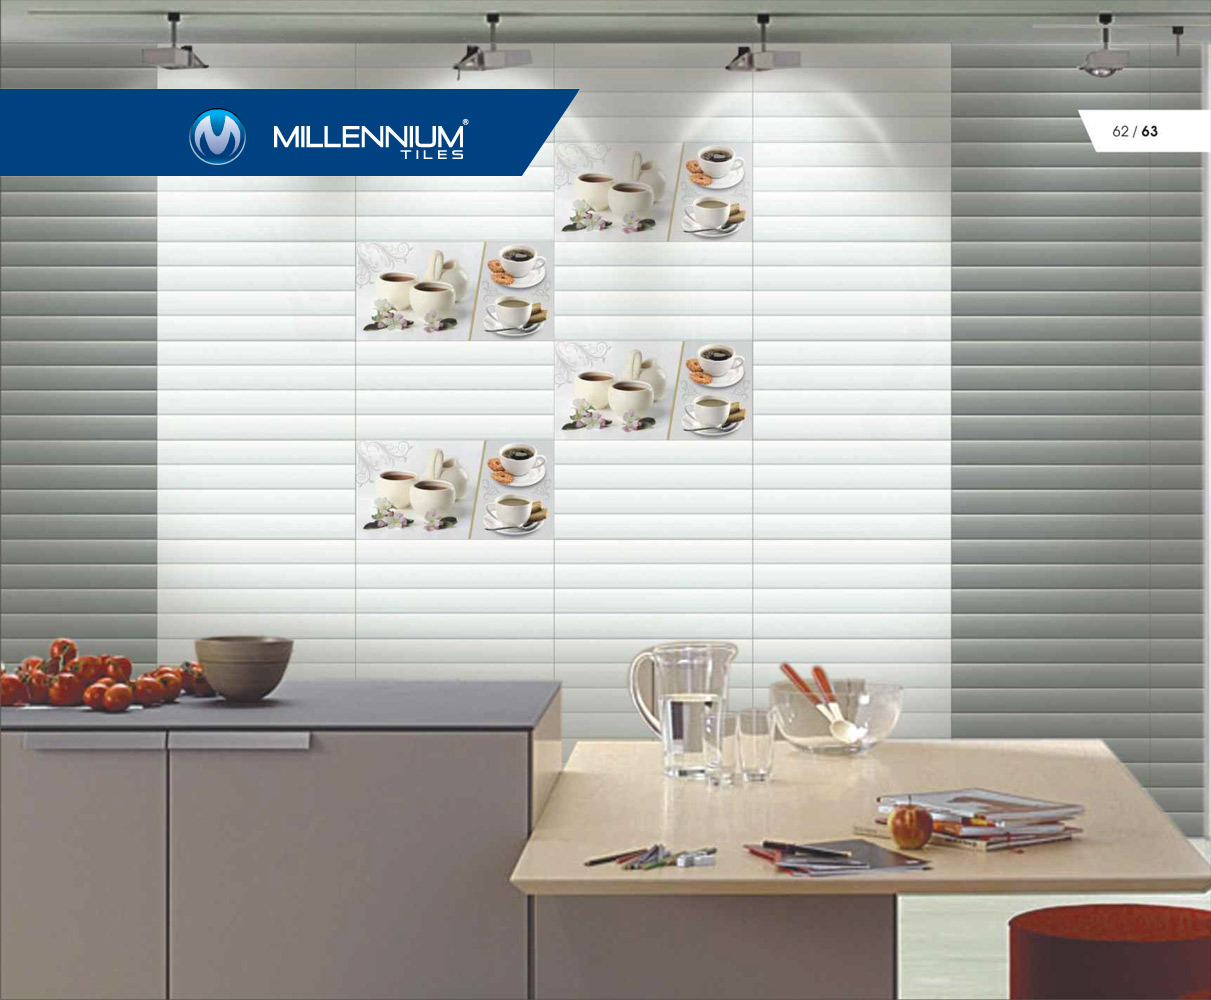 Kitchen Tiles In India indian kitchen tiles india - buy kitchen tiles,ceramic tile